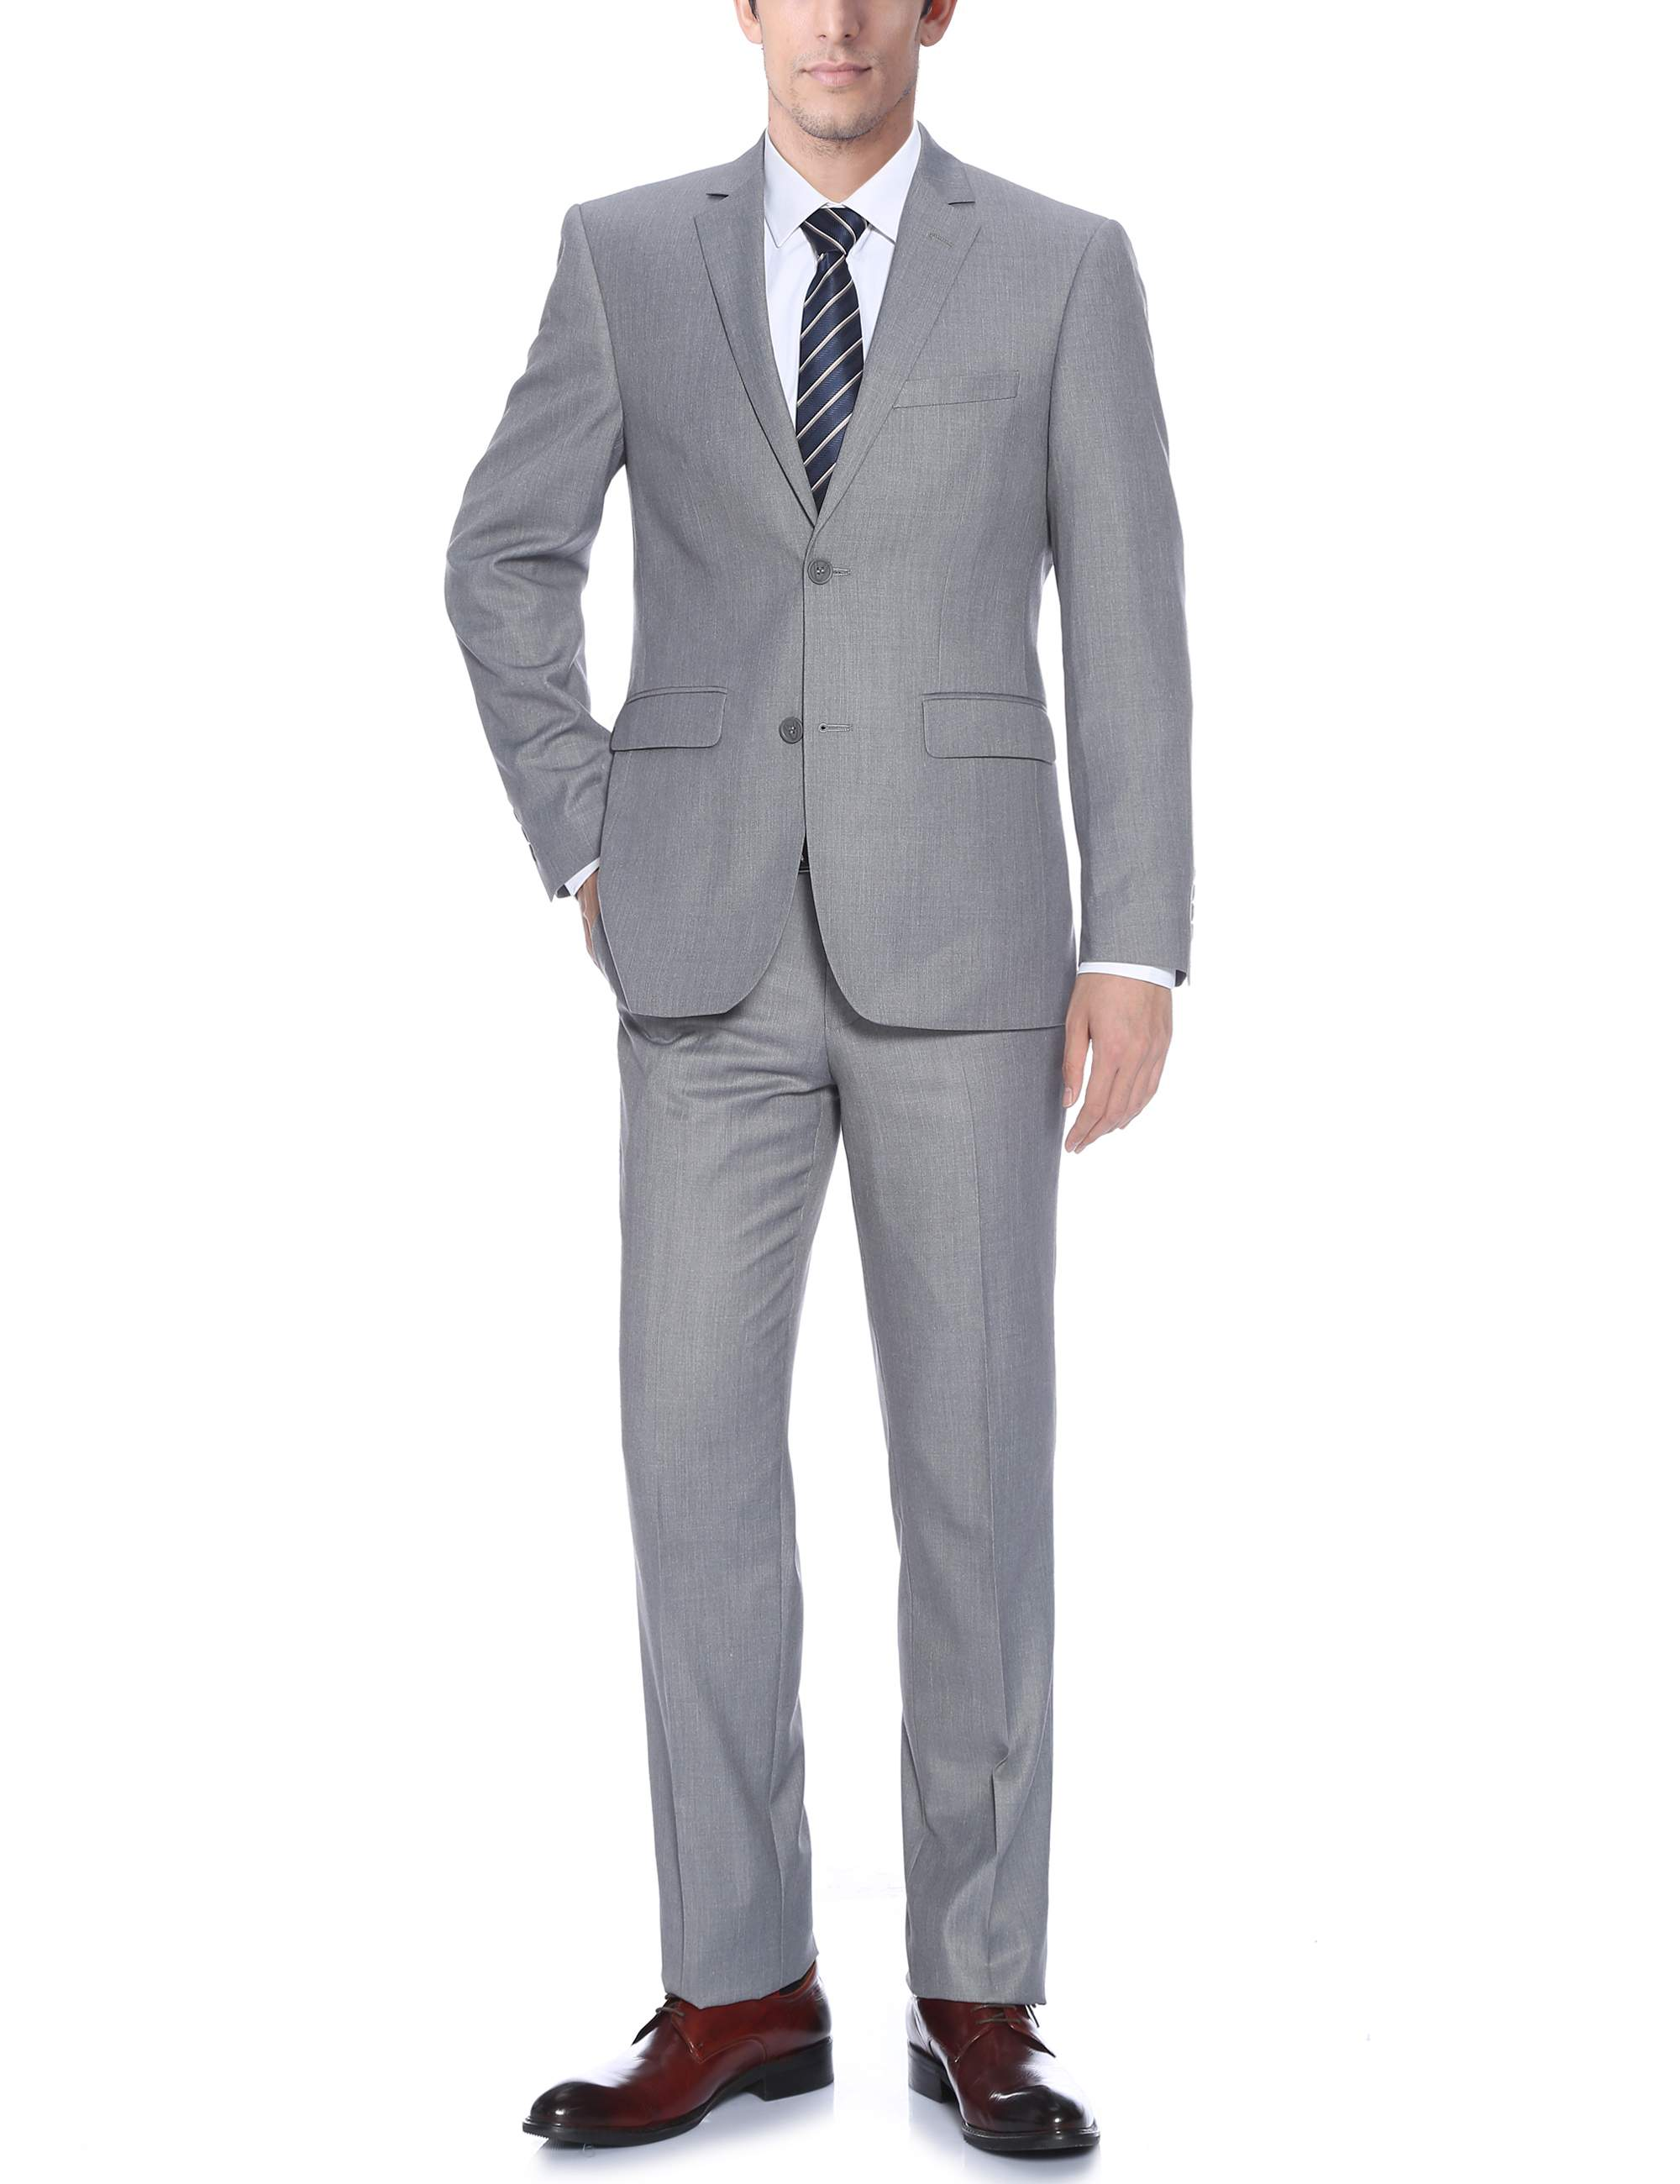 Bellomi Men's Light Grey Classic Fit Italian Styled Two Piece Suit